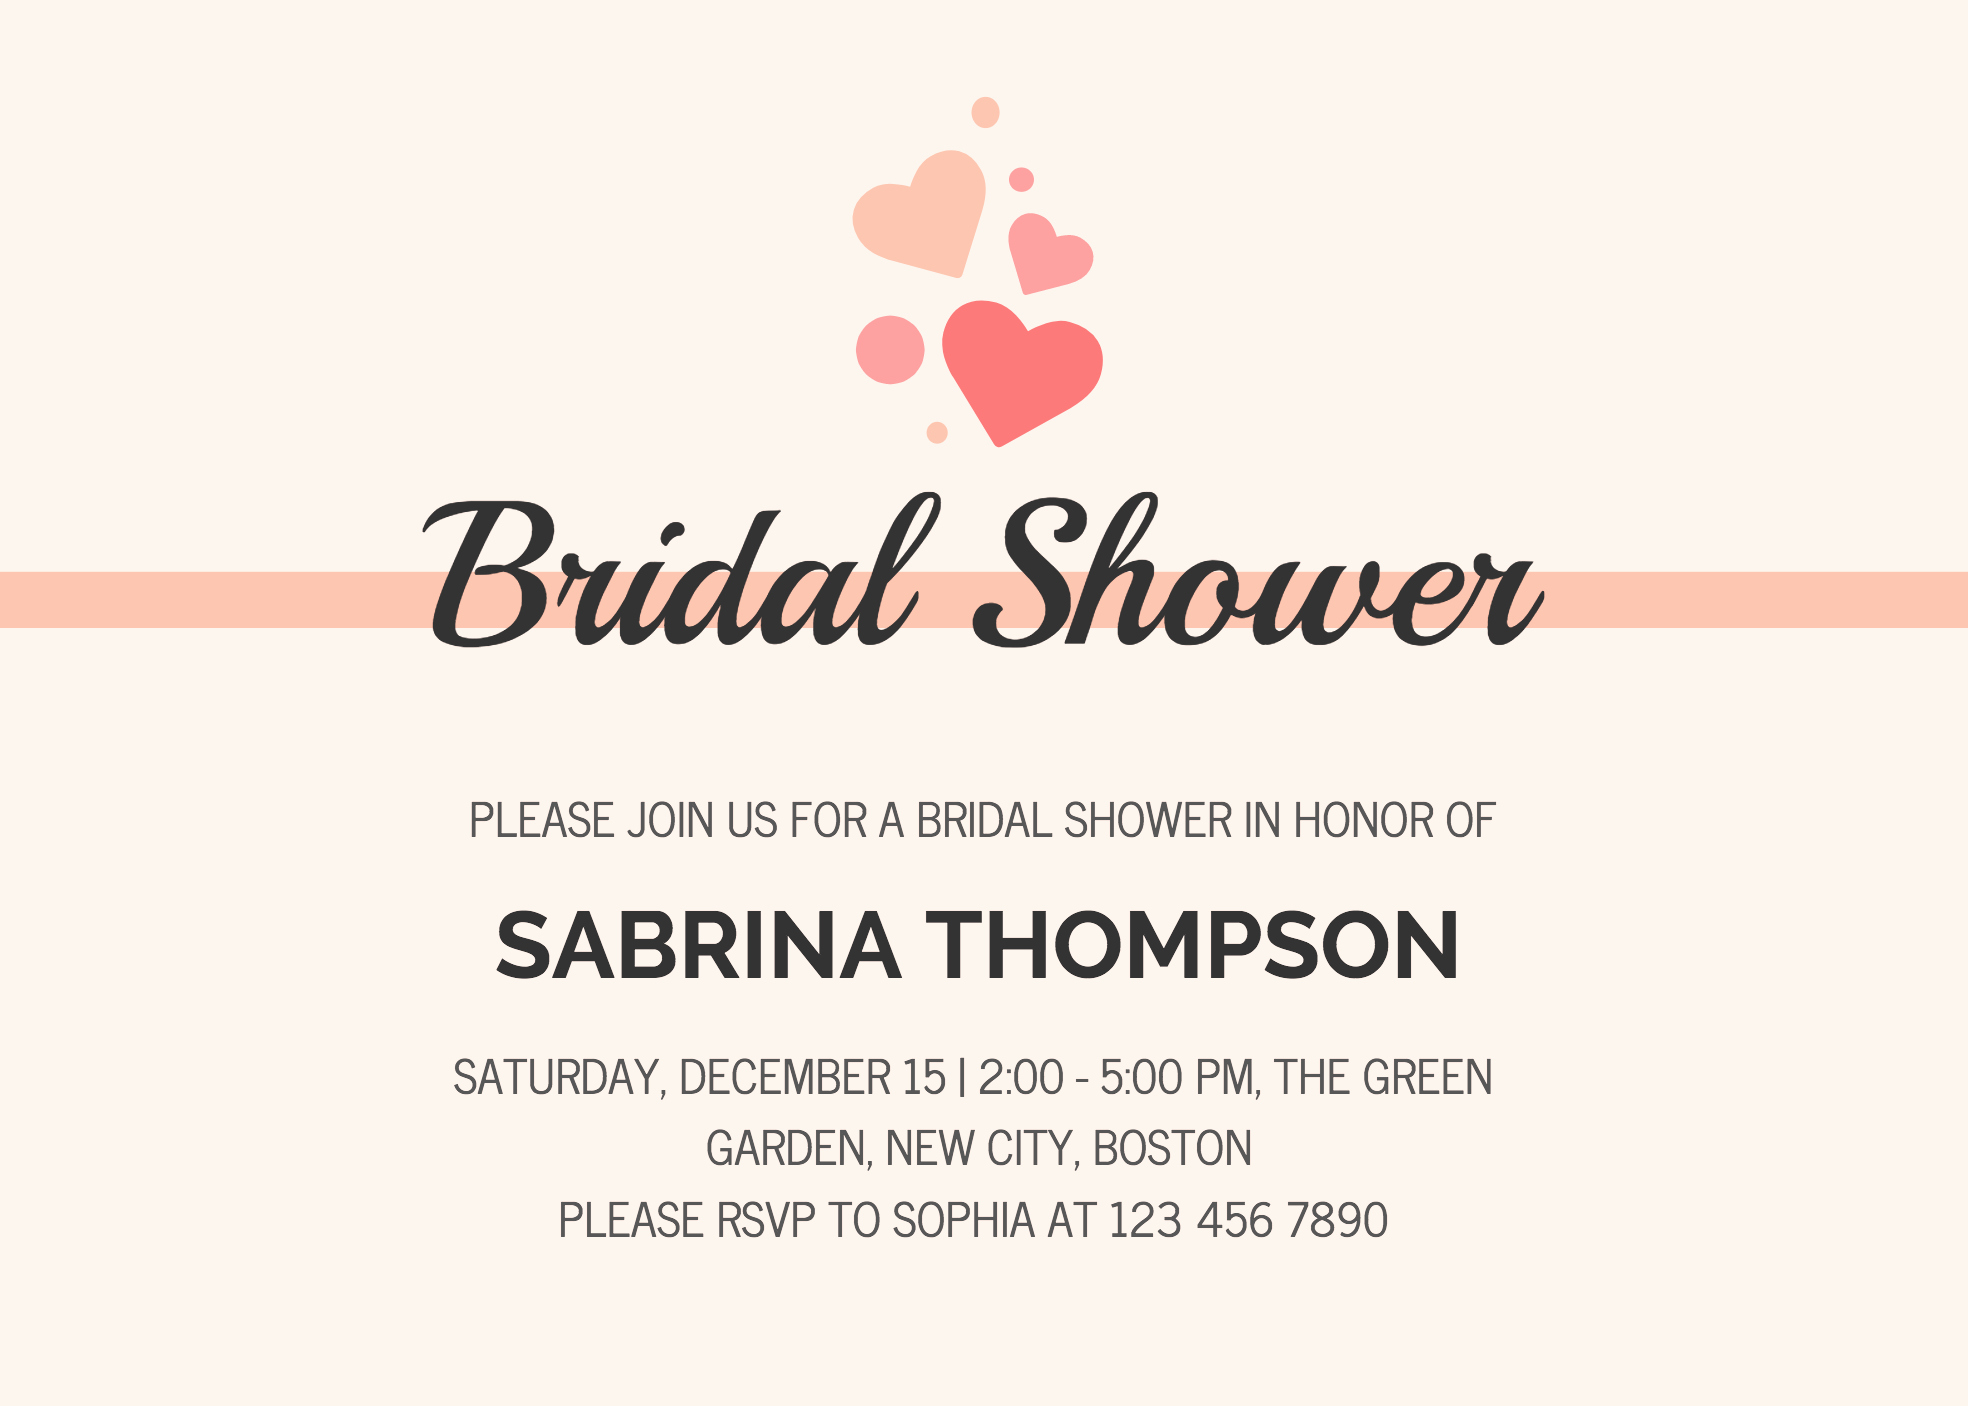 Bridal Shower Invitation Template Inspirational 19 Diy Bridal Shower and Wedding Invitation Templates